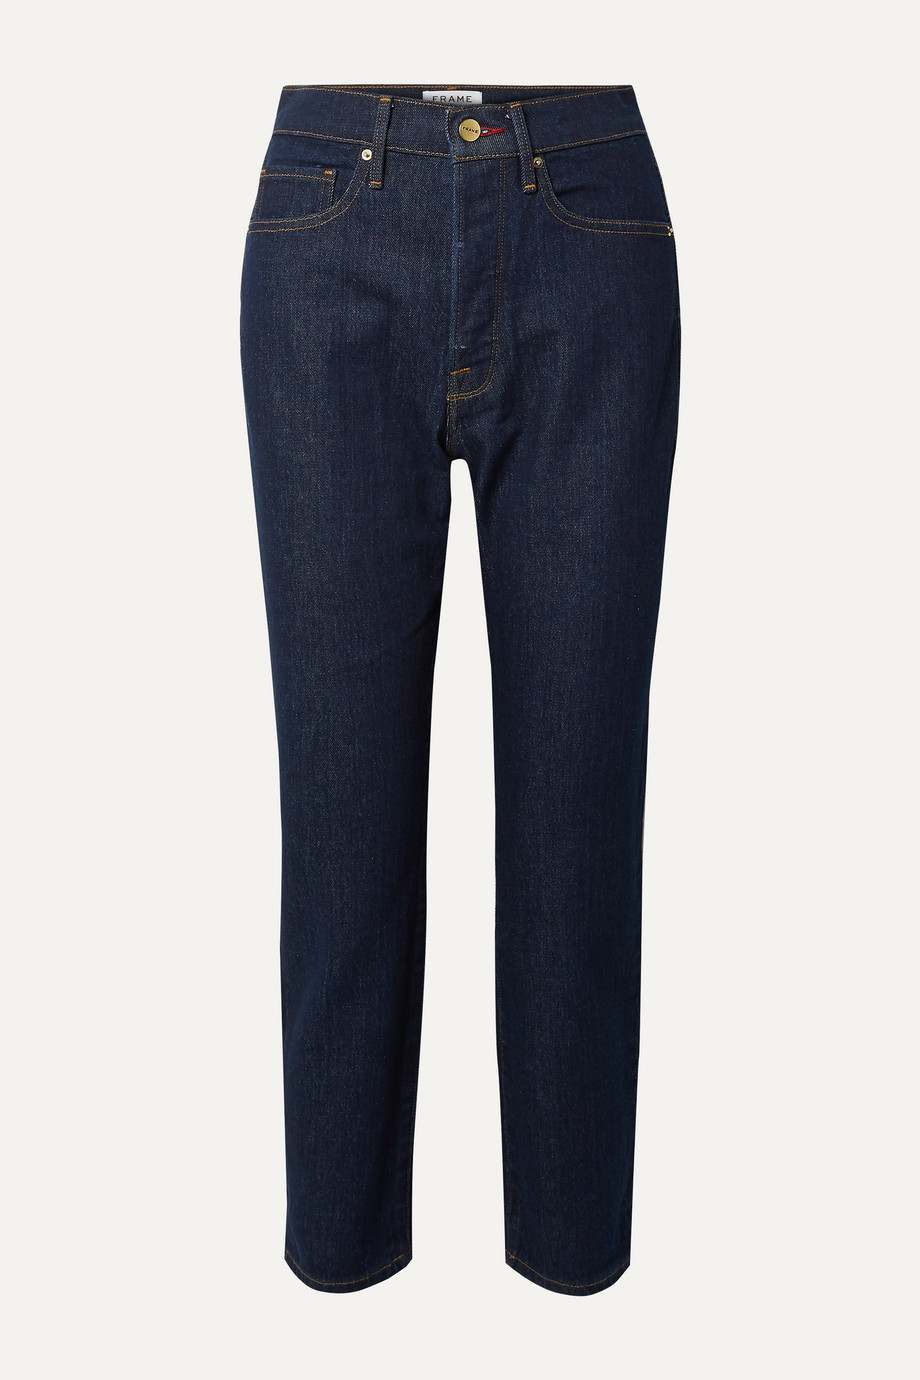 FRAME Le Original high-rise straight-leg jeans